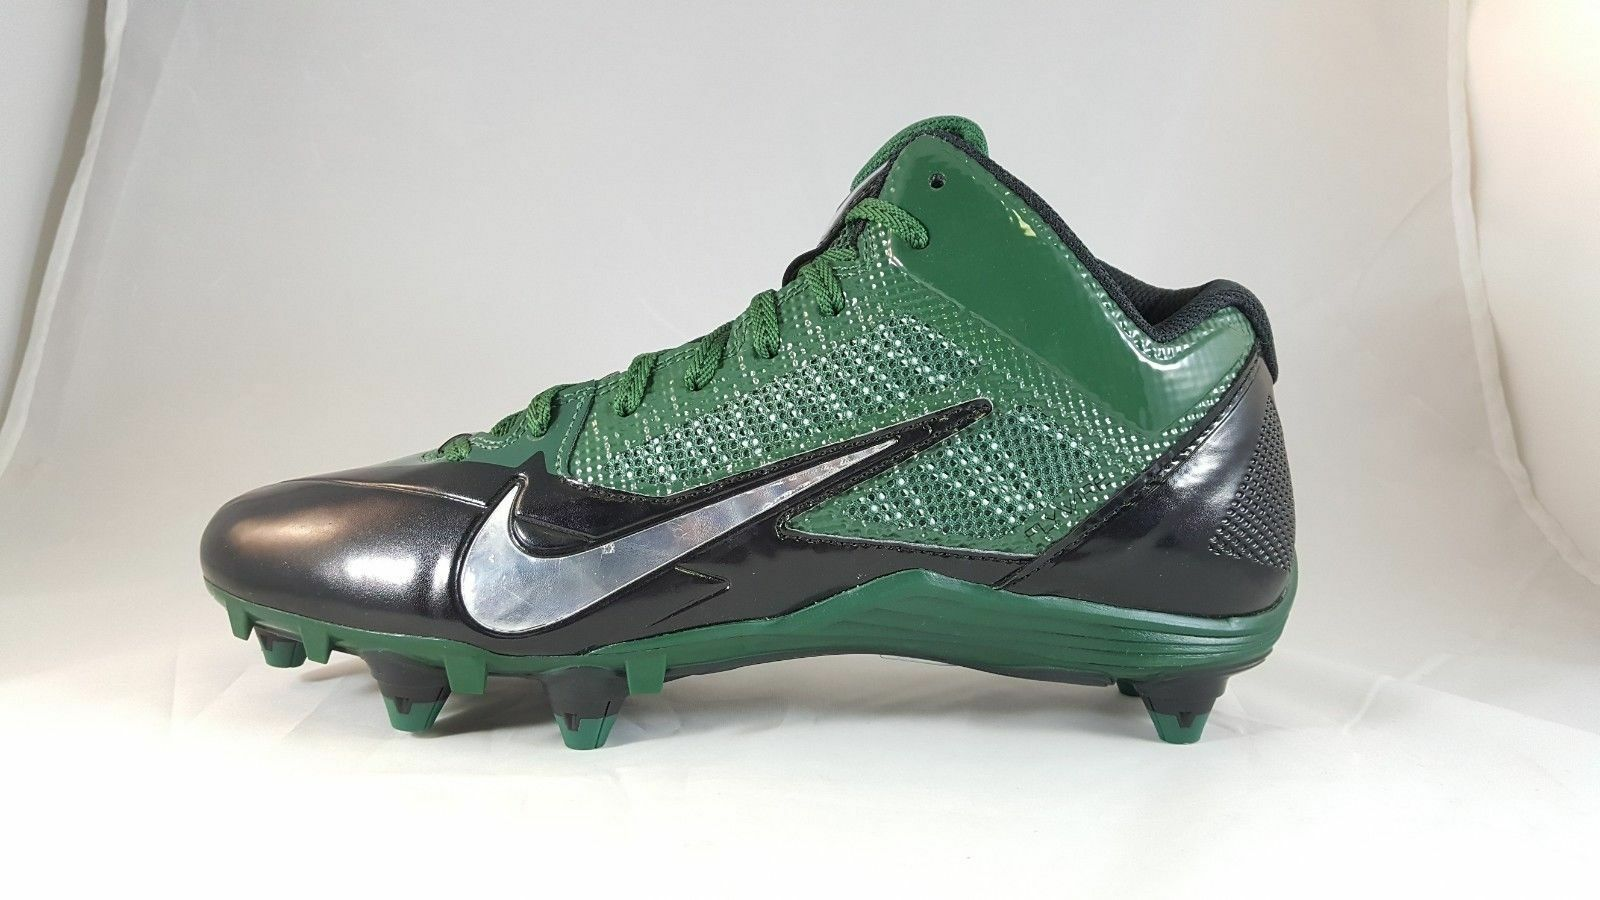 Nike Alpha Pro Men's Football Cleats 599025 030 Comfortable New shoes for men and women, limited time discount